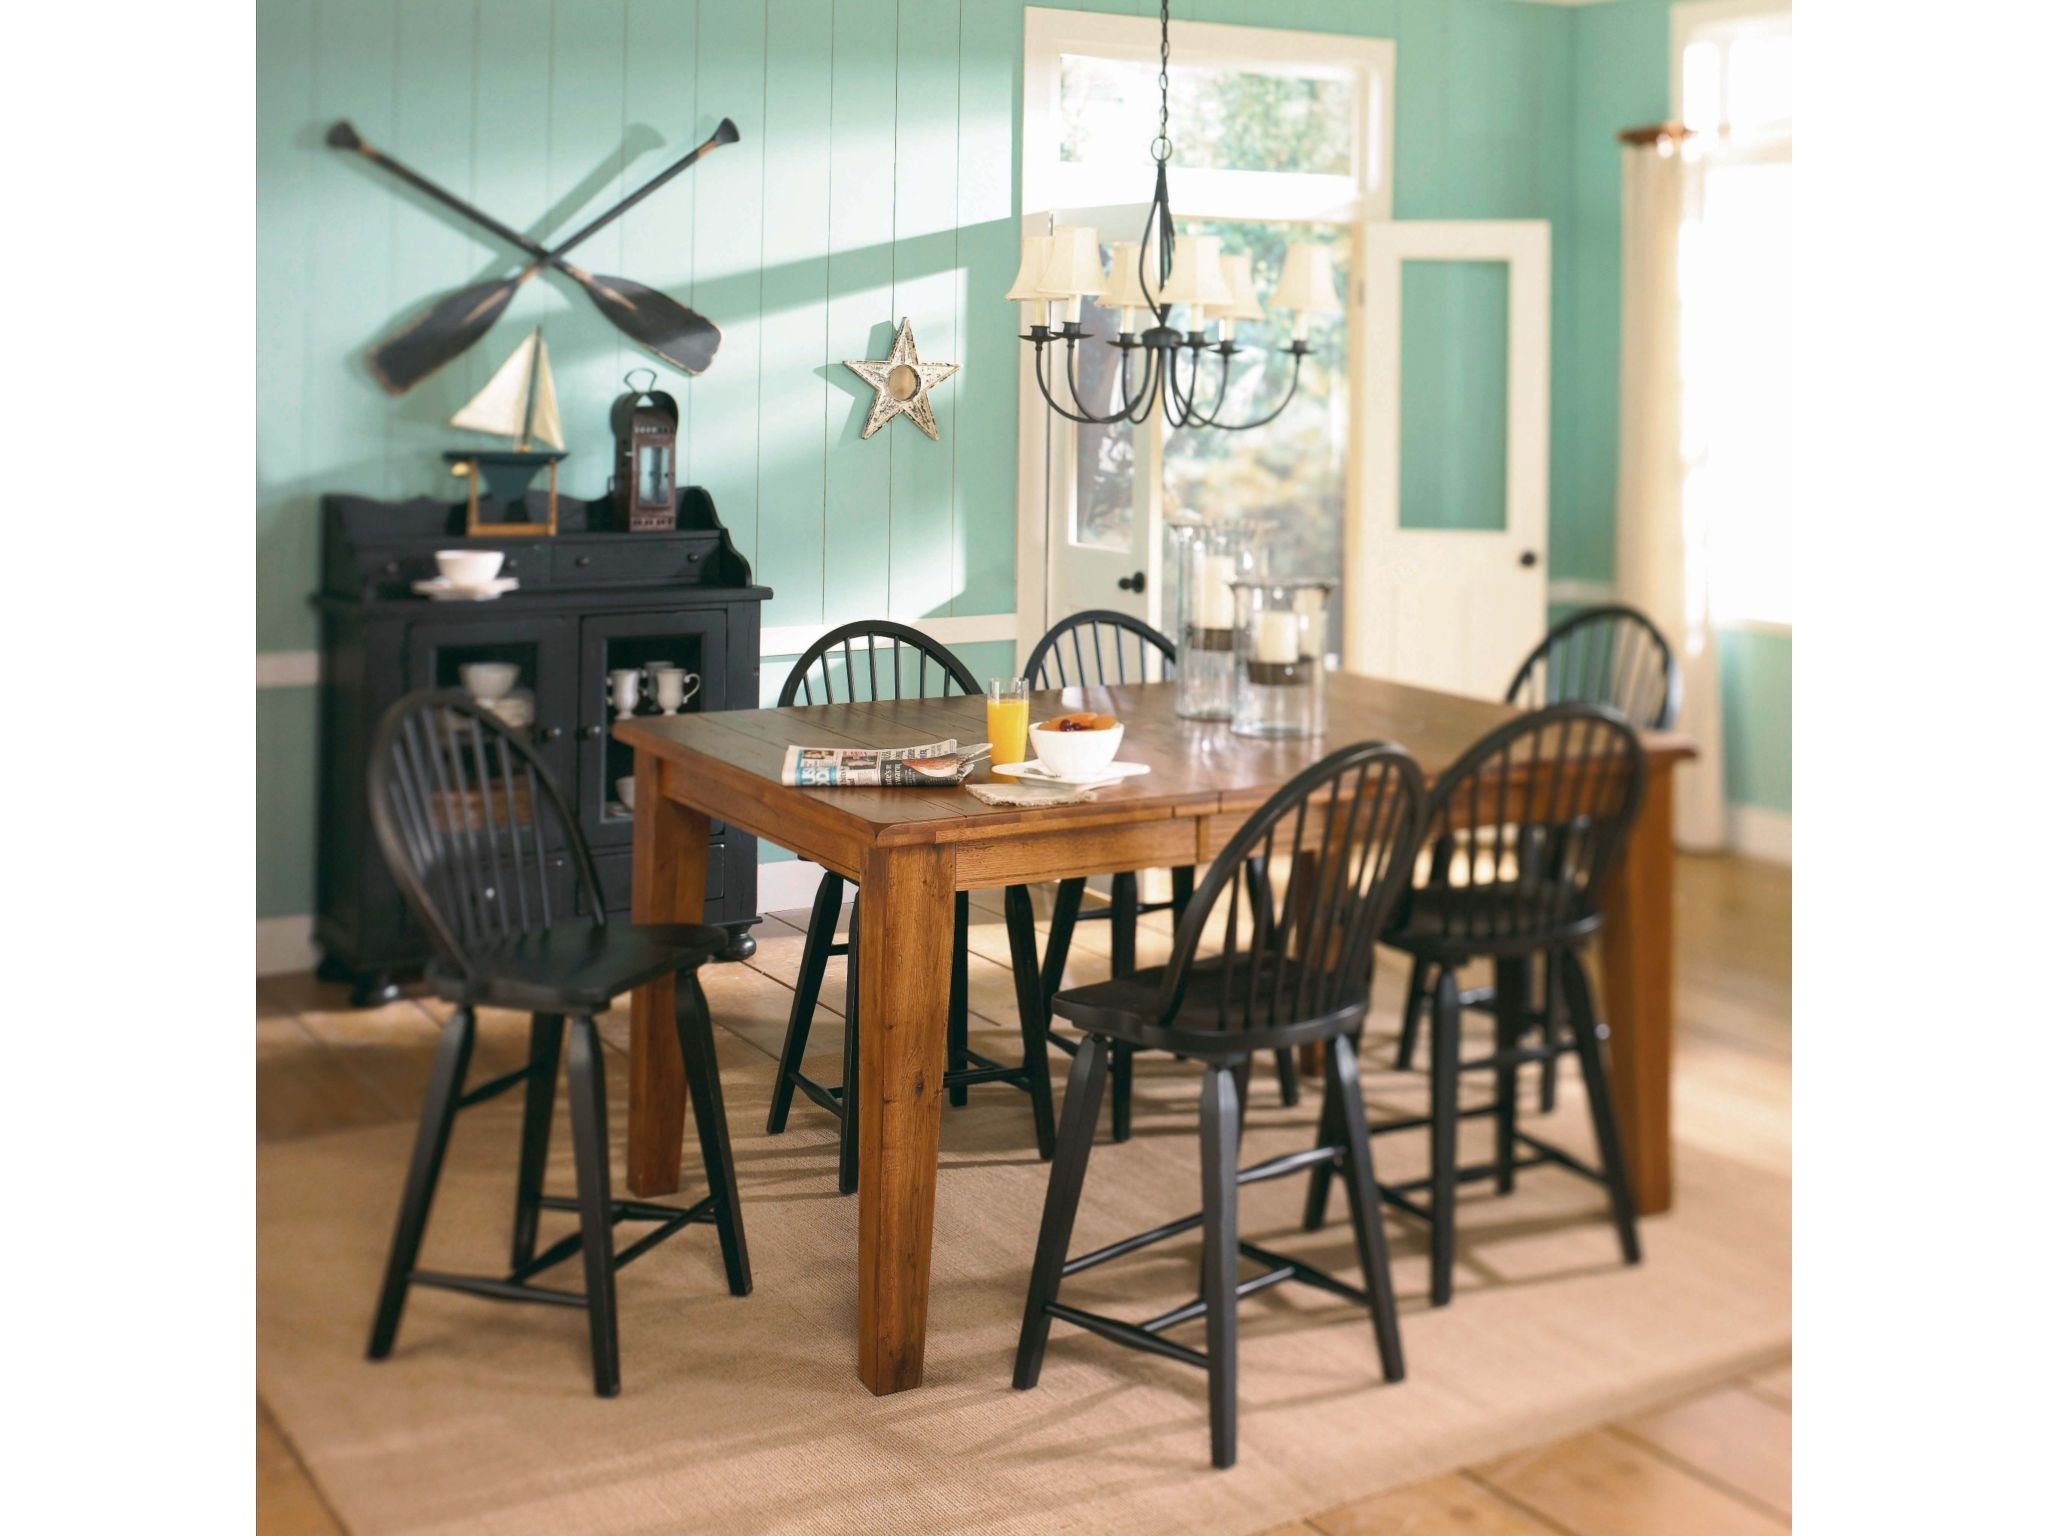 Broyhill Attic Heirlooms Chest Broyhill Bar Chairs